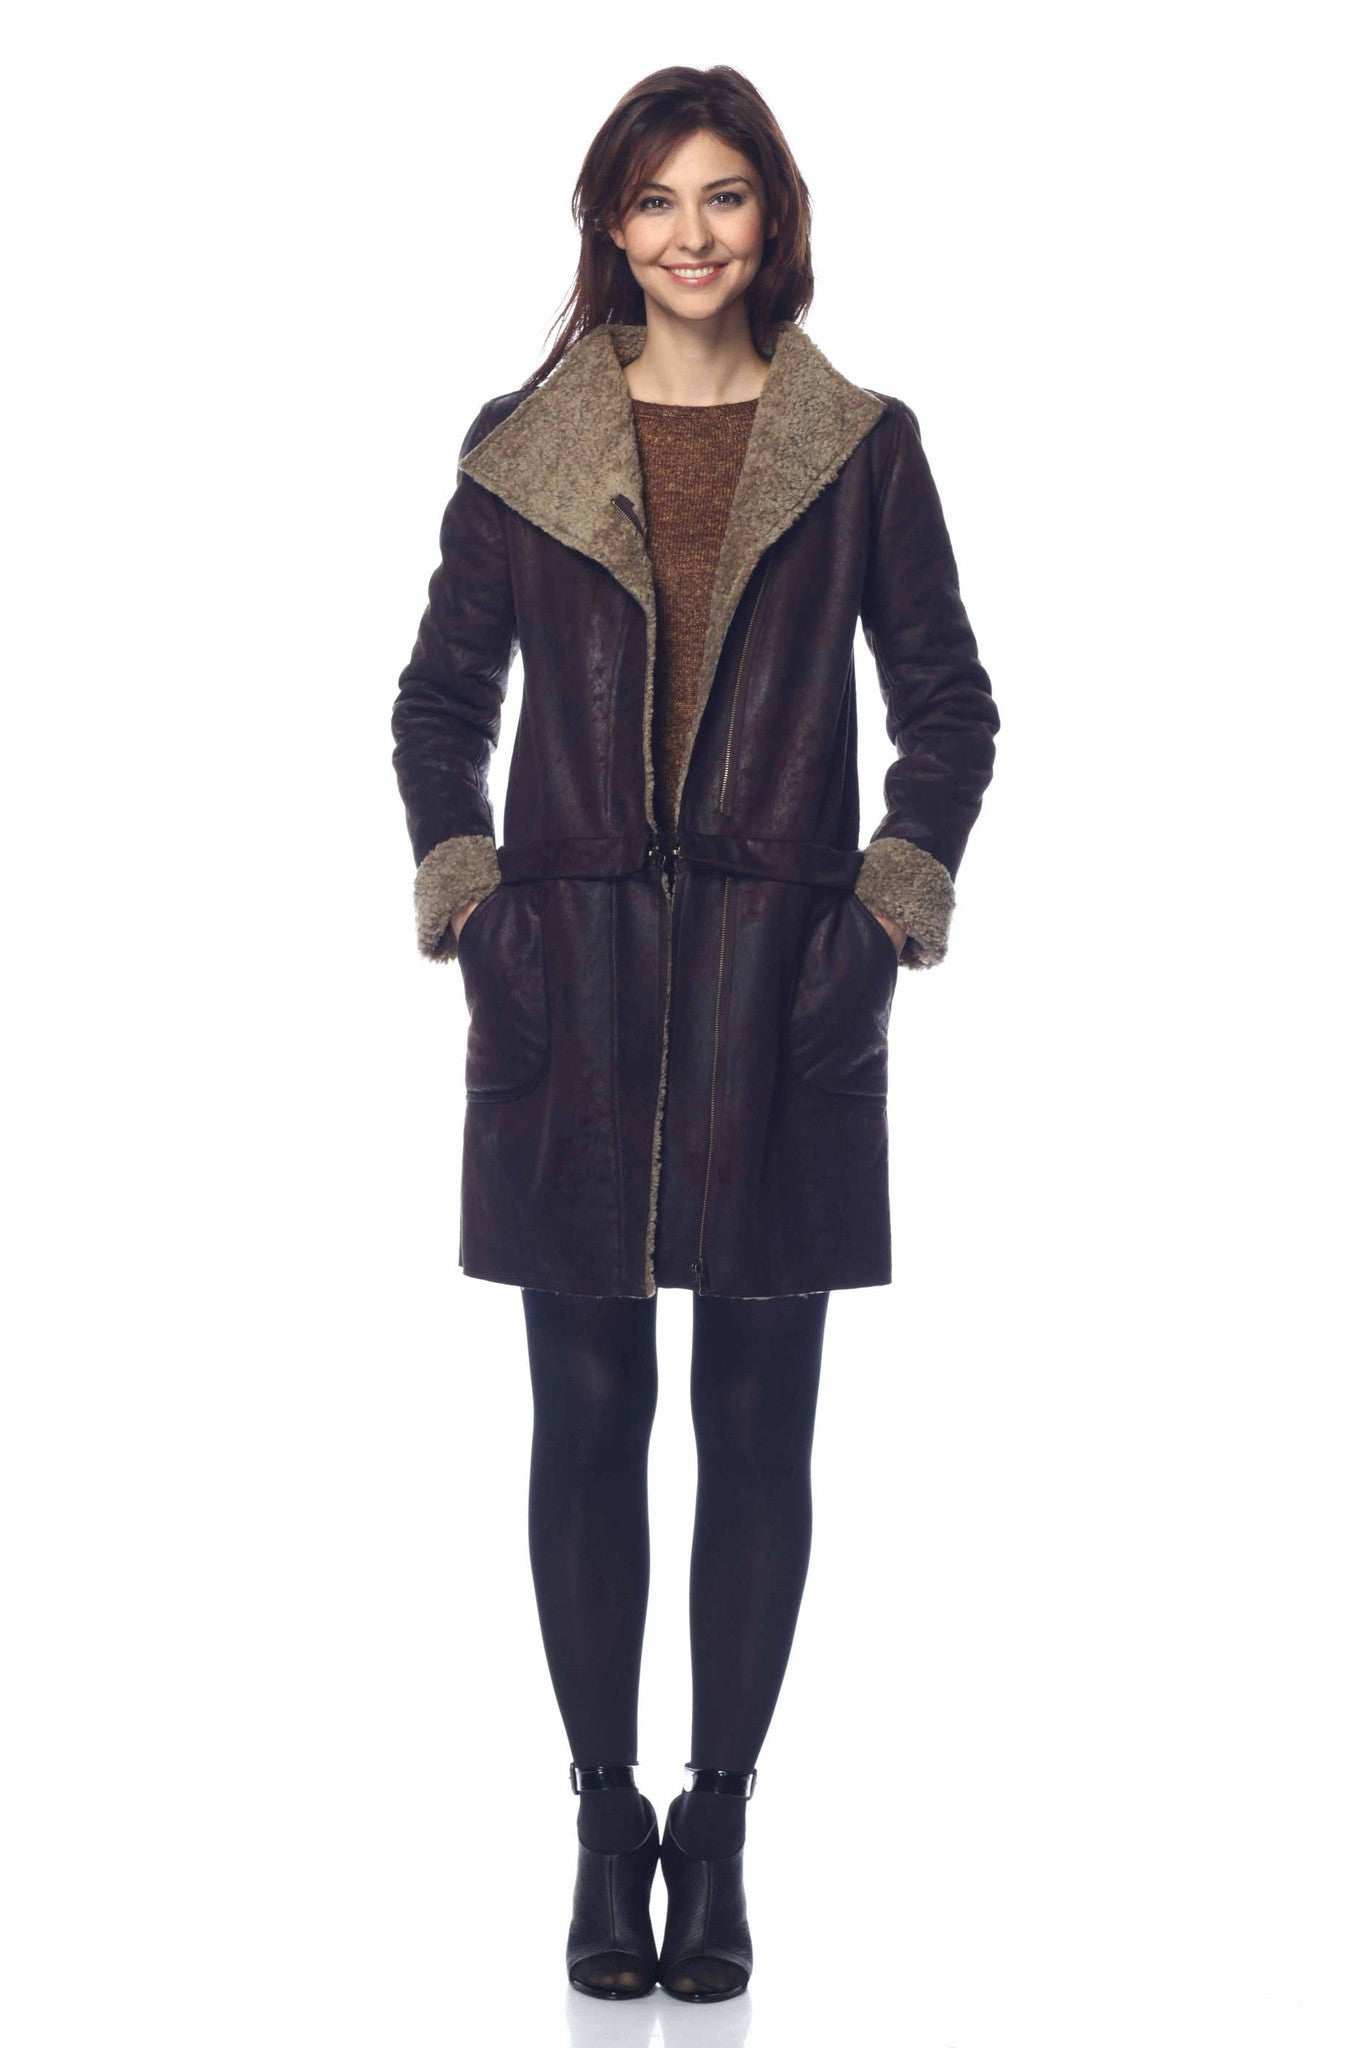 08d7bb423 Hayden 6-Way Leather and Faux Shearling Jacket/Coat